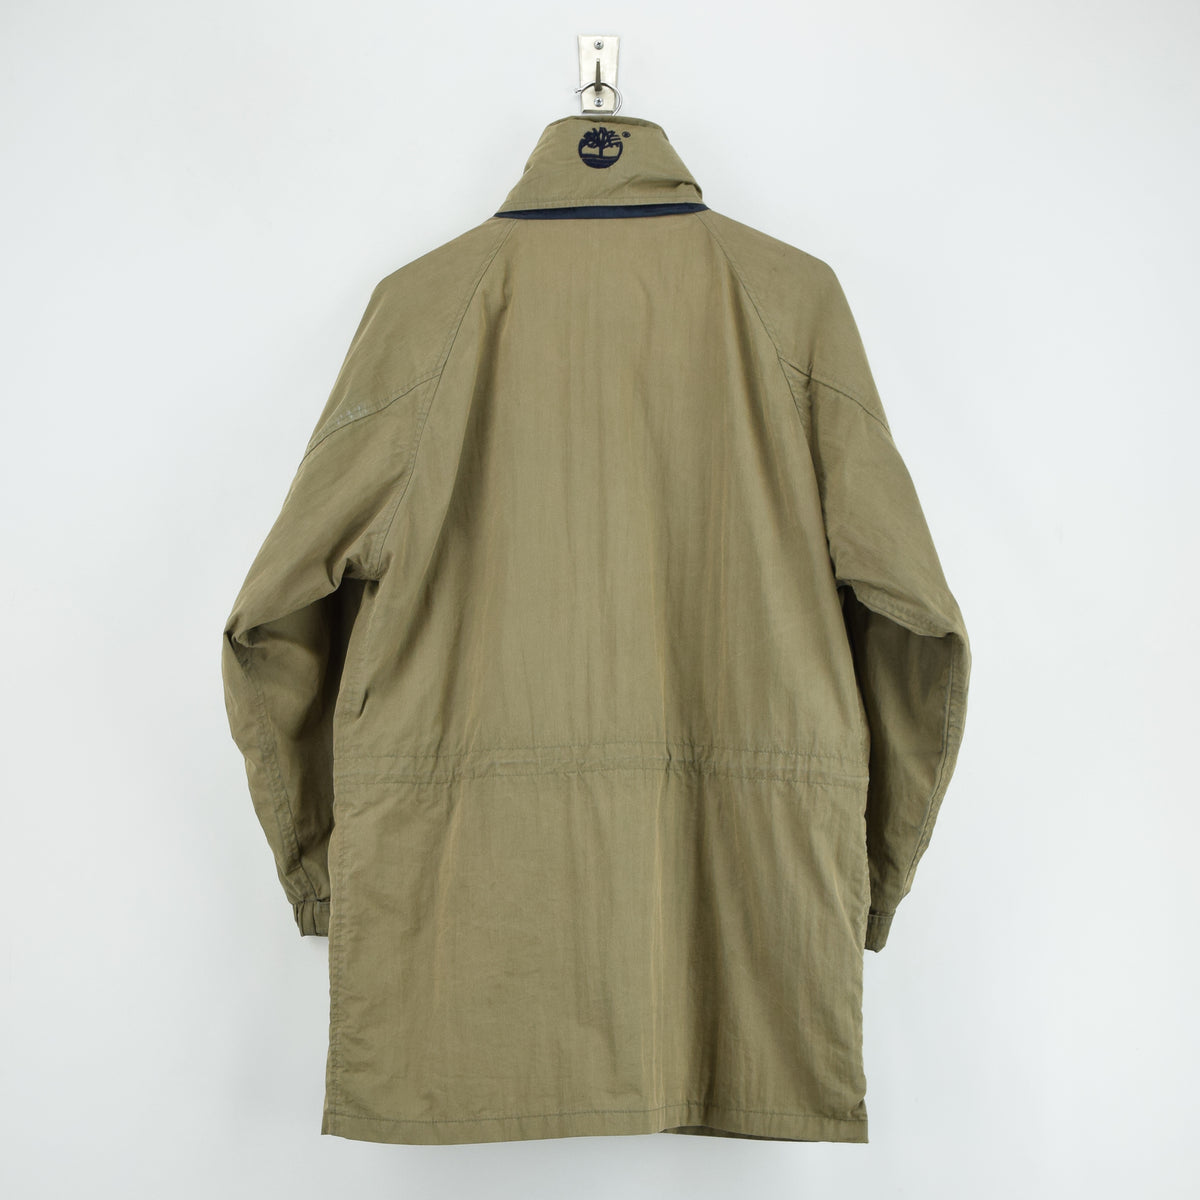 Vintage Timberland Olive Green Coat Jacket with Concealed Hood XS back